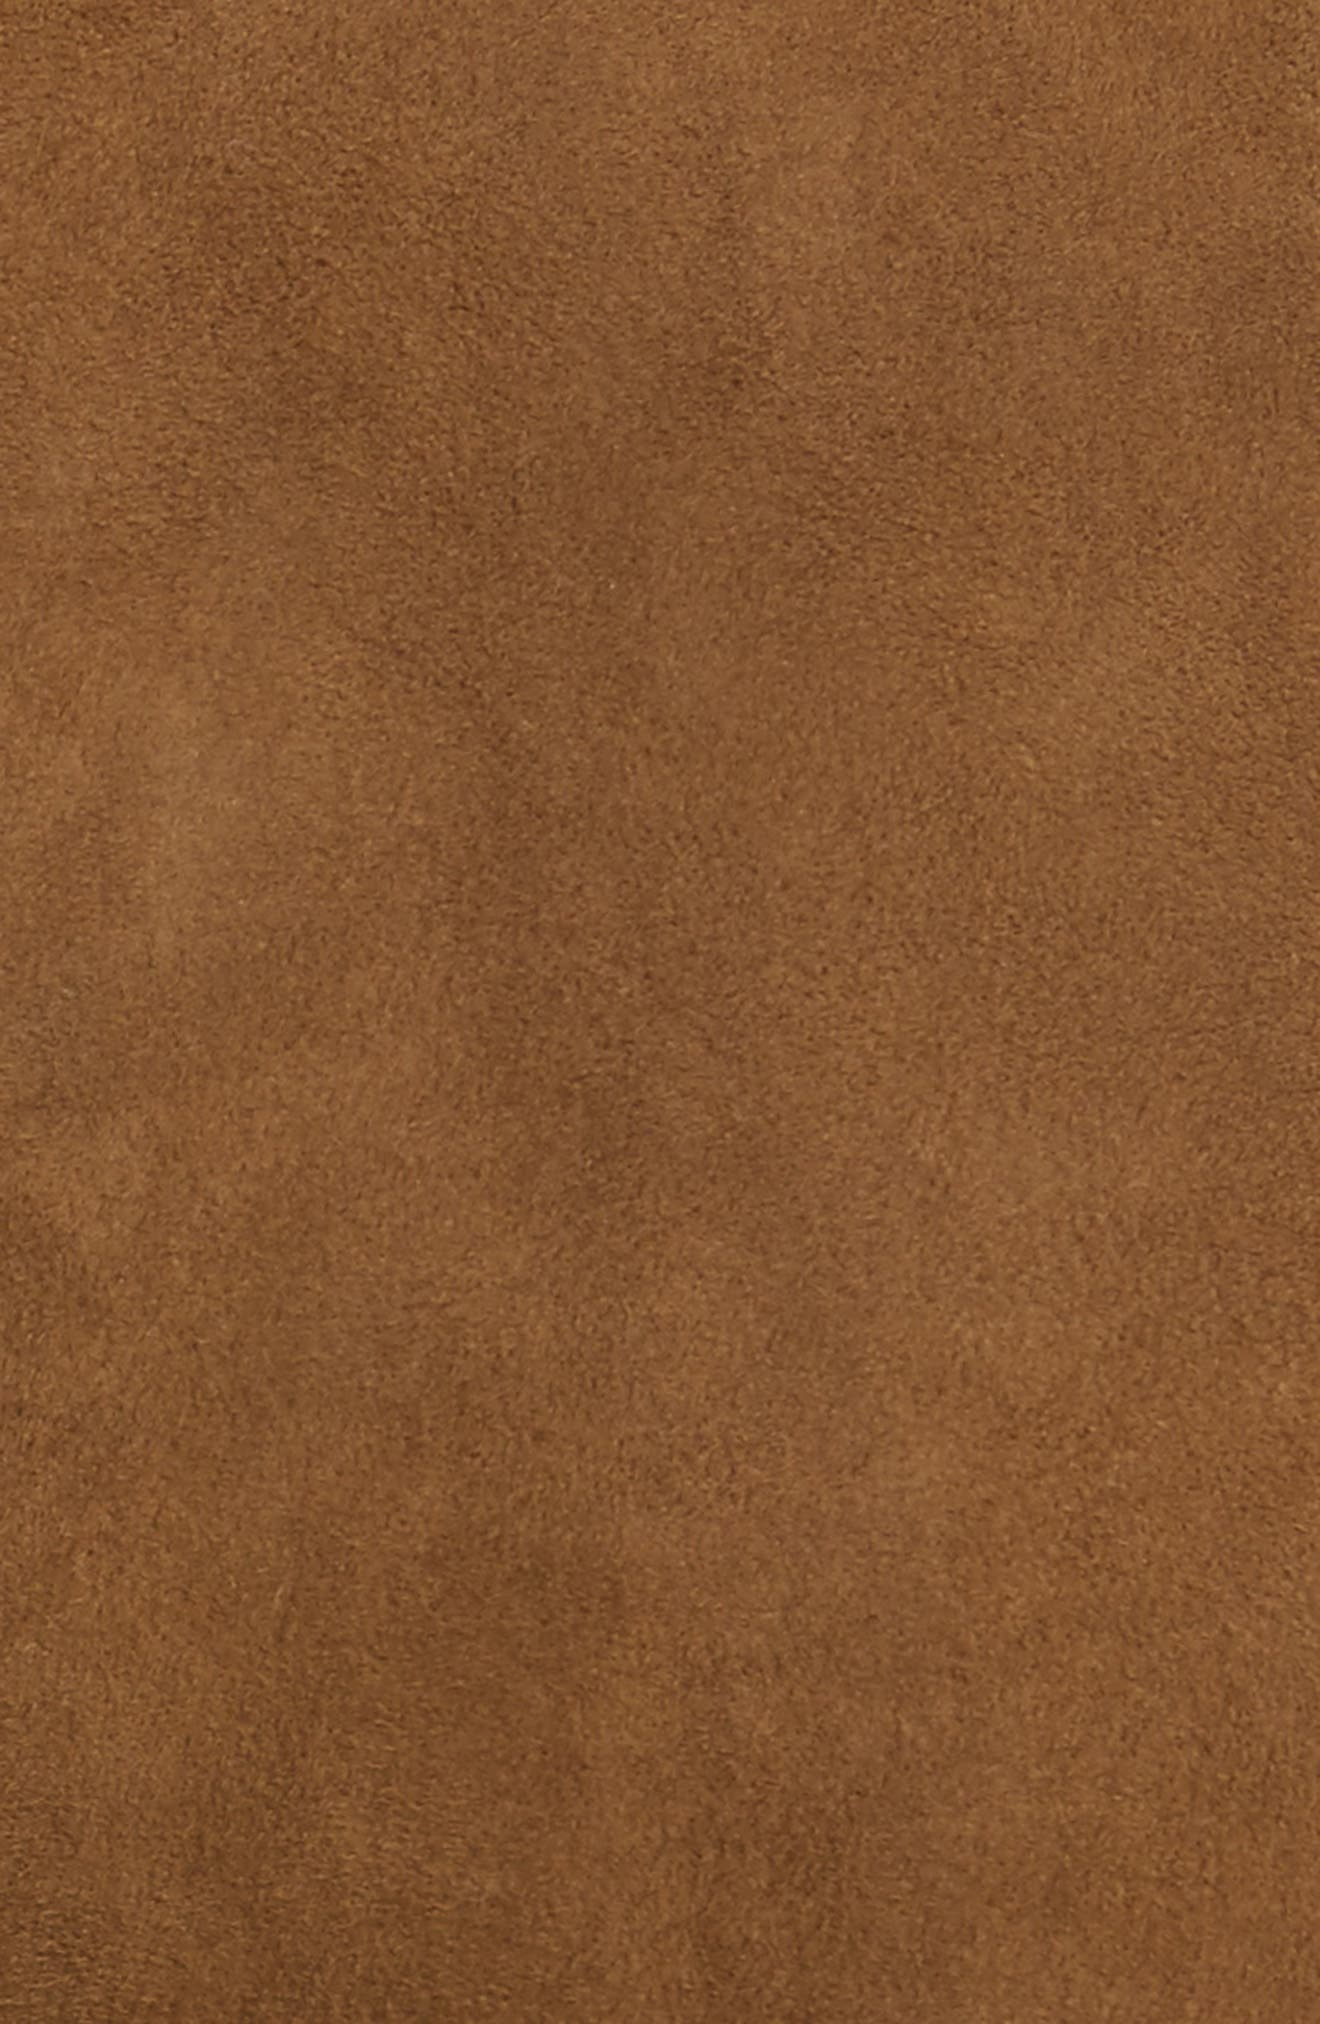 Brooklyn Suede Pants,                             Alternate thumbnail 3, color,                             Sequoia